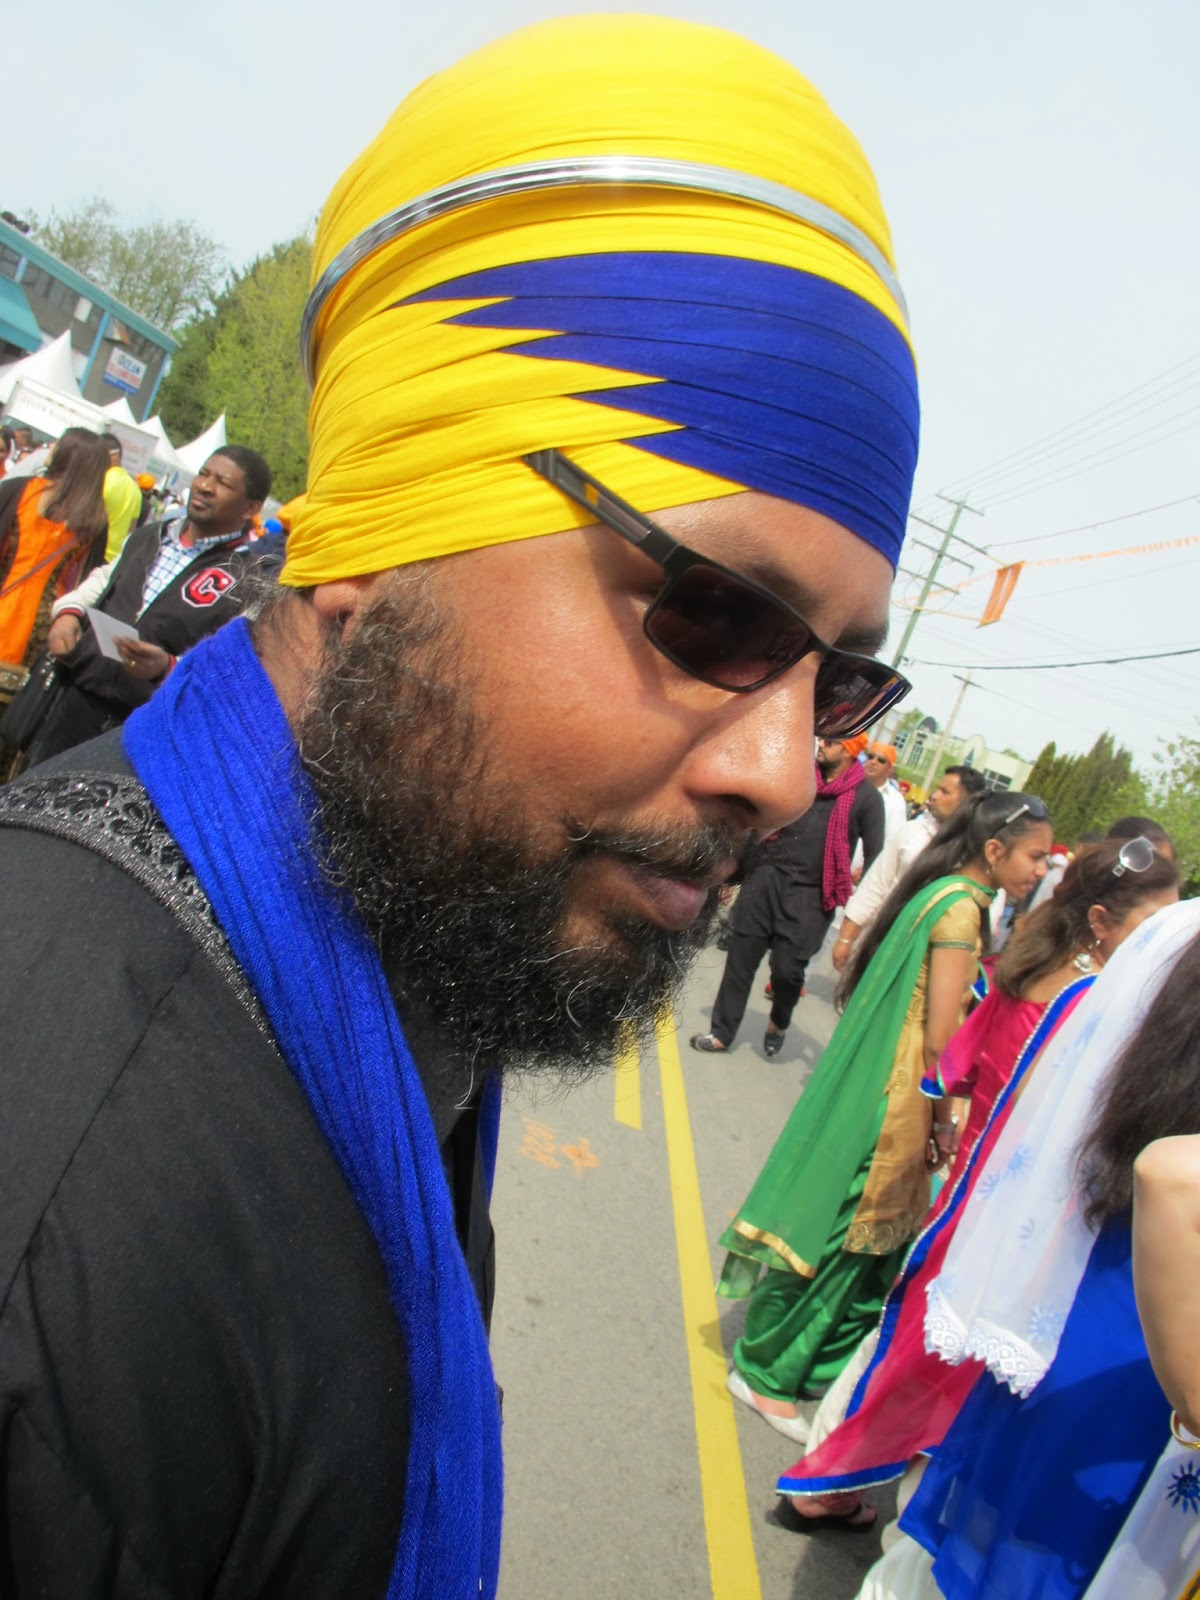 a6cff74457a See http   indiatoday.intoday.in story sikhs-punjab-pagris-dastaar-pagri- turban-karan-singh-chhabra 1 201561.html. Some styles are called dhamalla  or ...